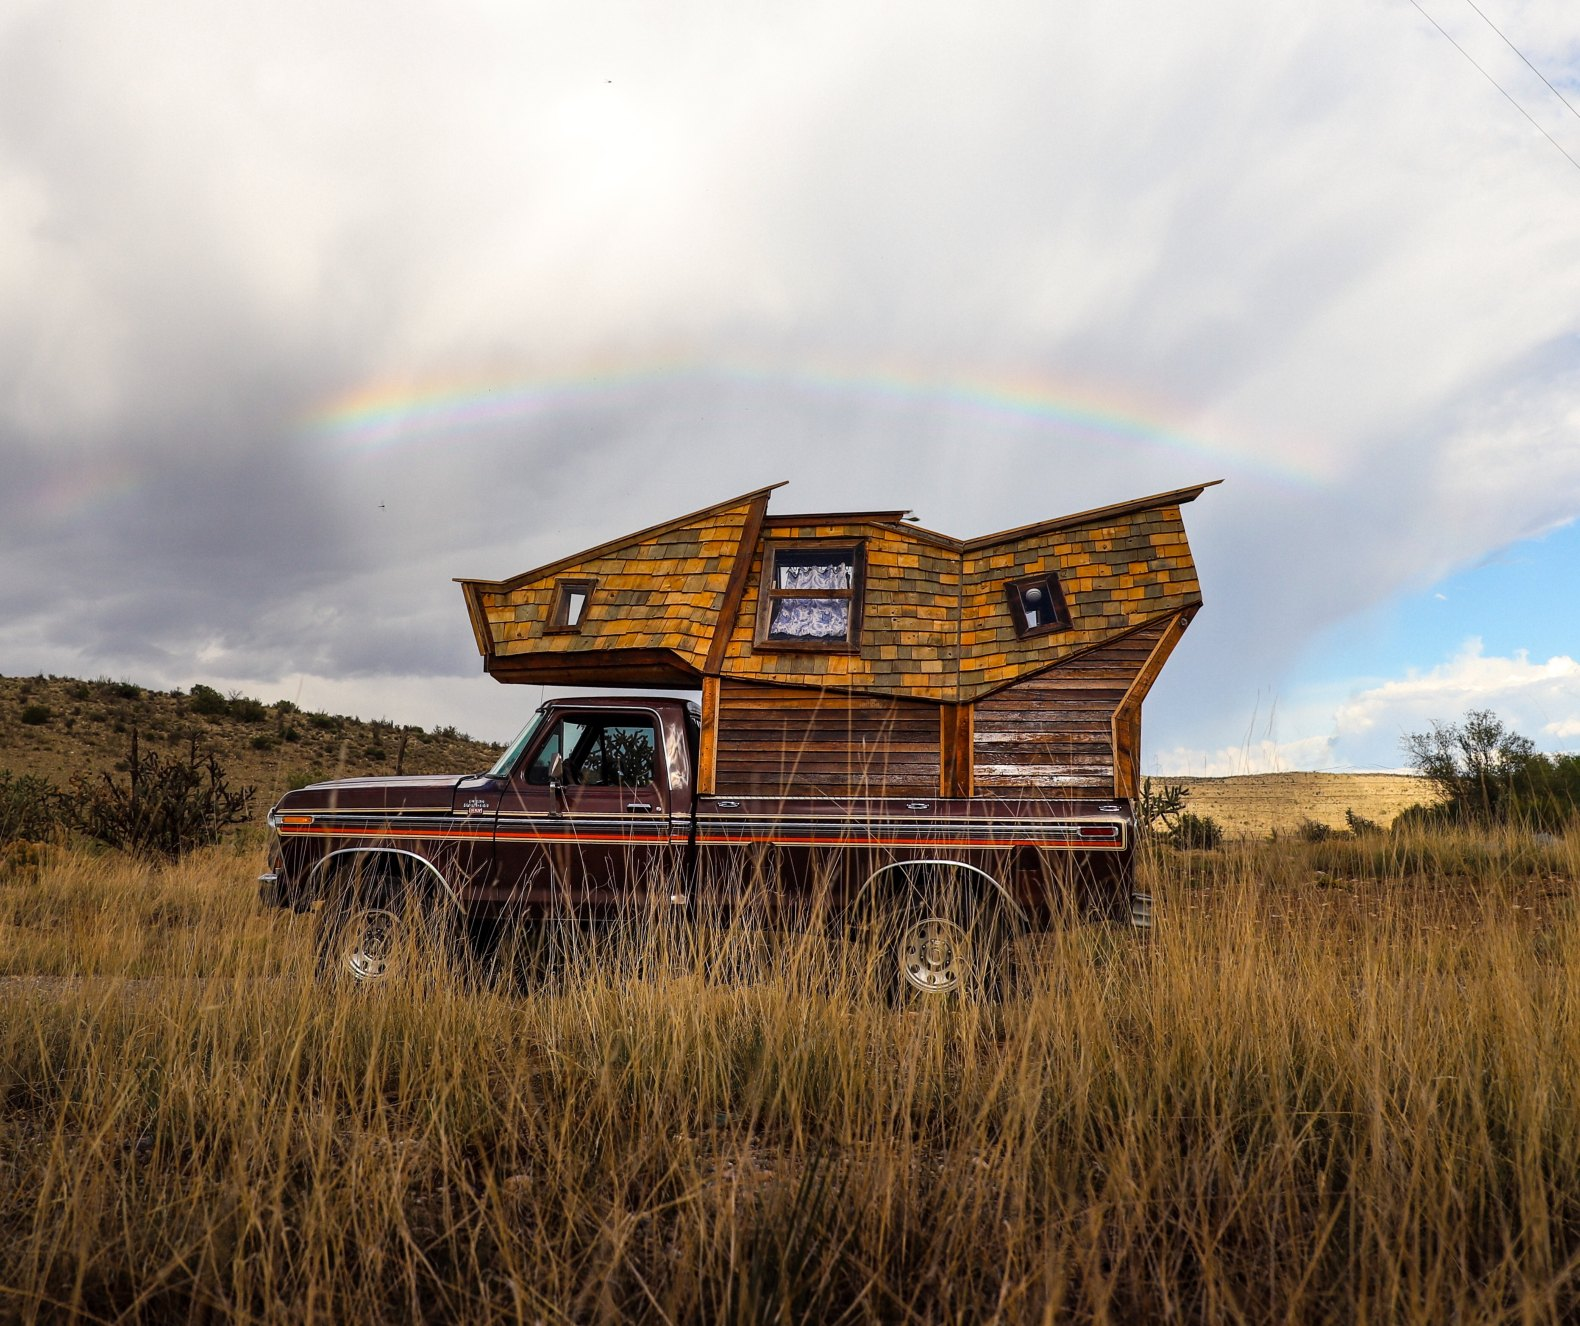 Elementary teacher installs a dreamy tiny cabin on his pickup truck